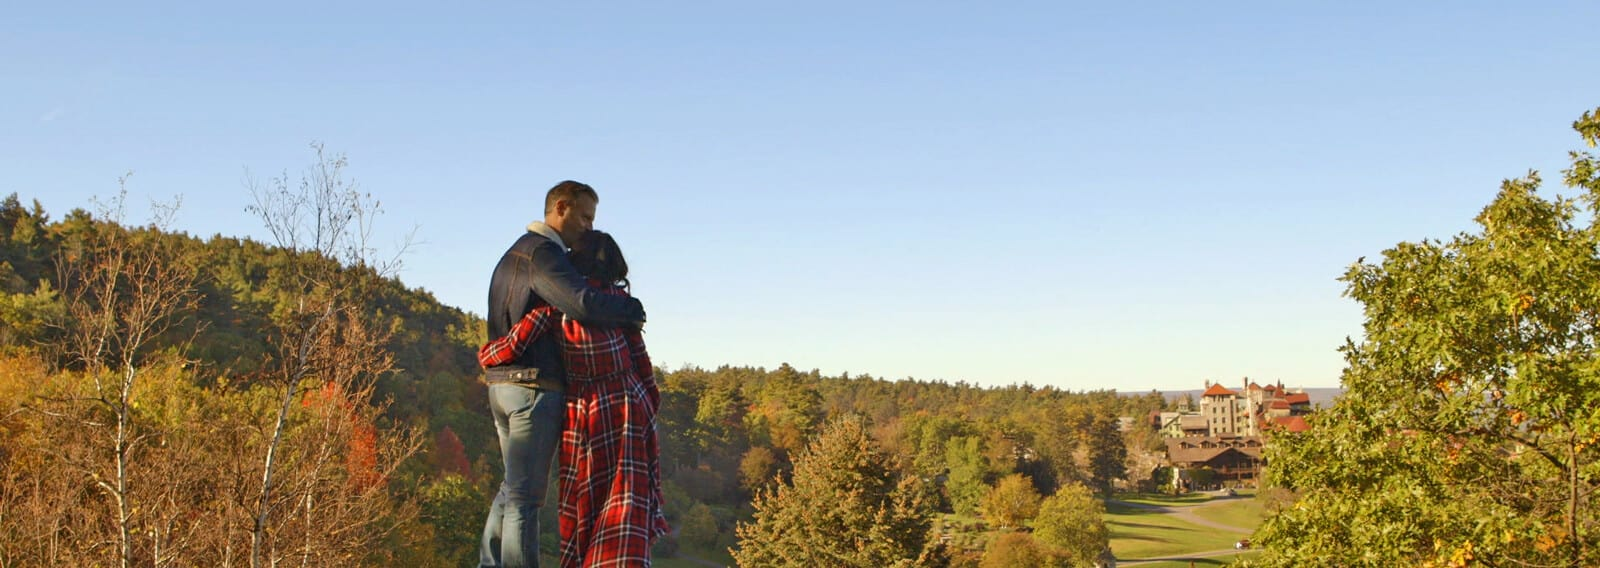 Couple's Fall Romantic Getaway